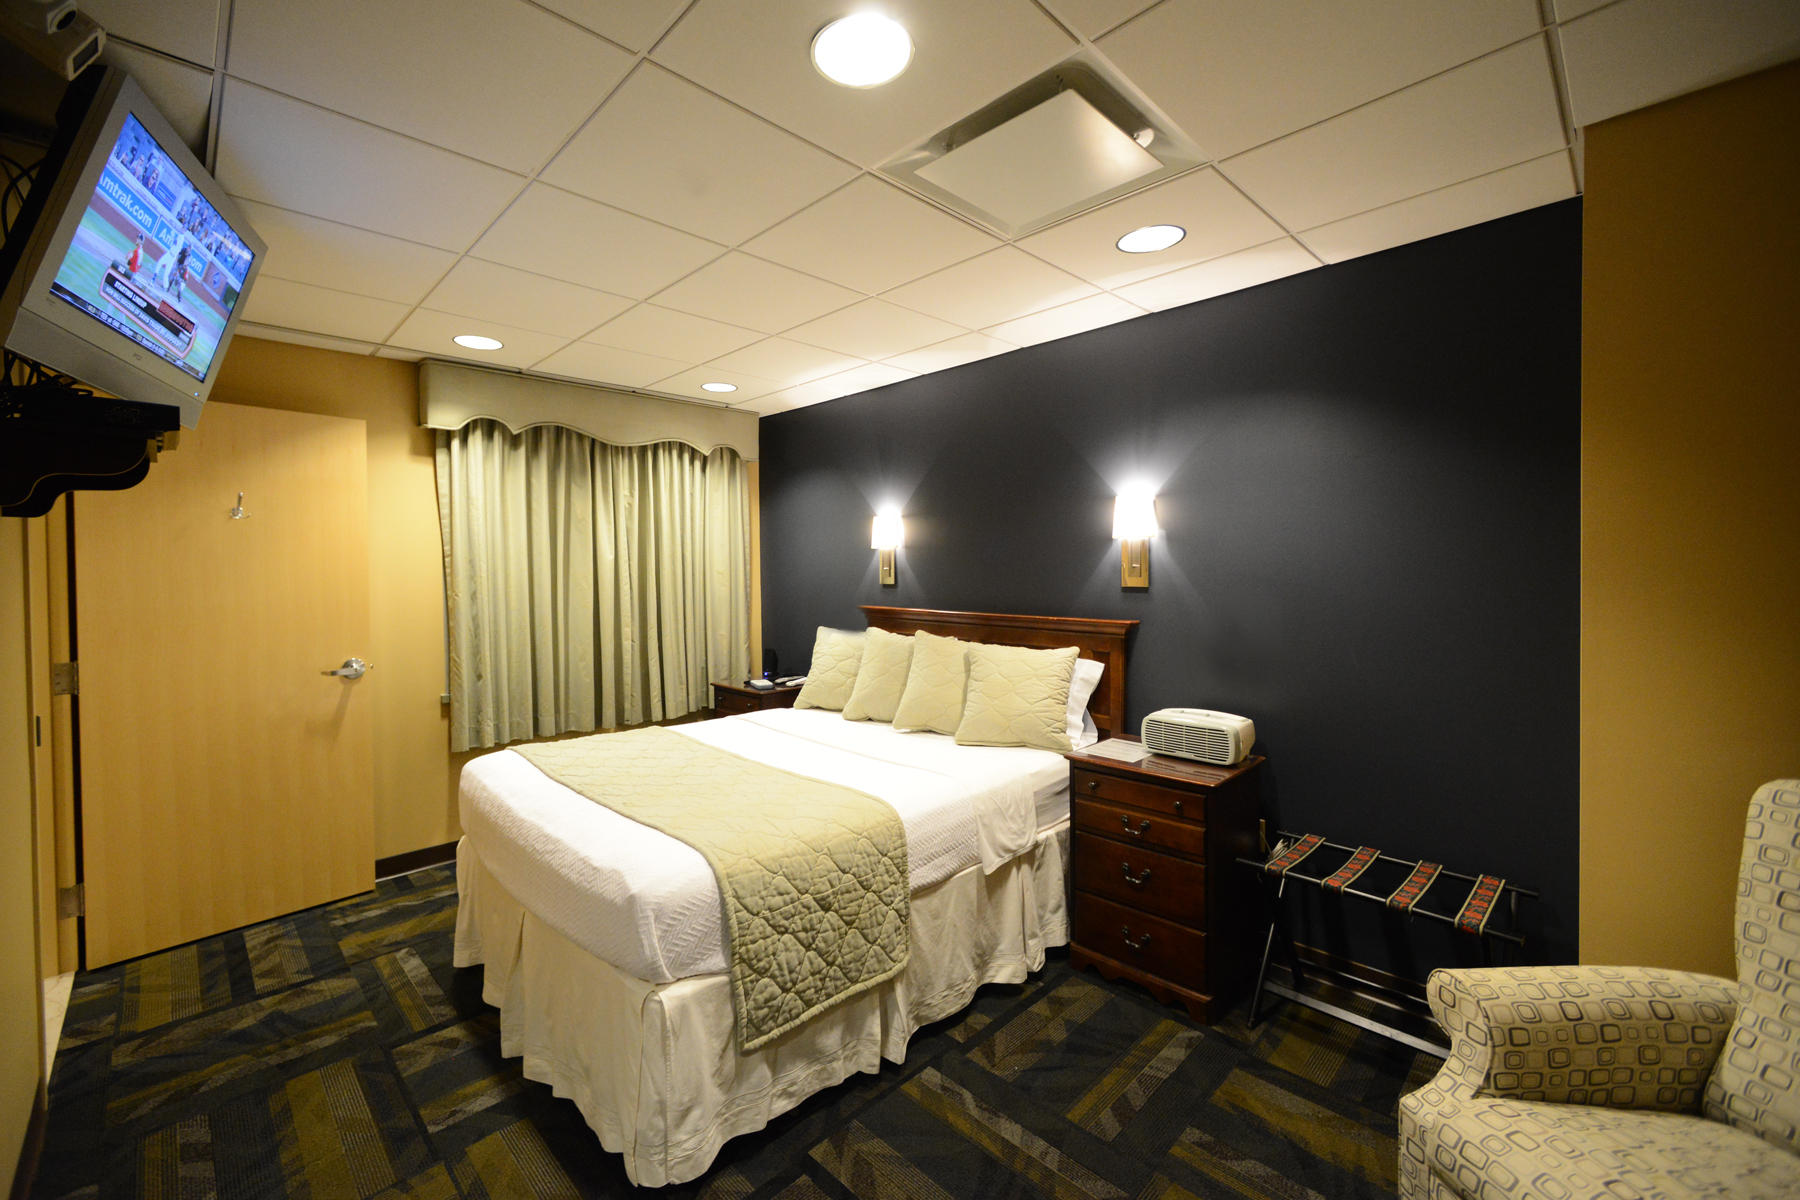 A private sleep study room at Valley's Center for Sleep Medicine